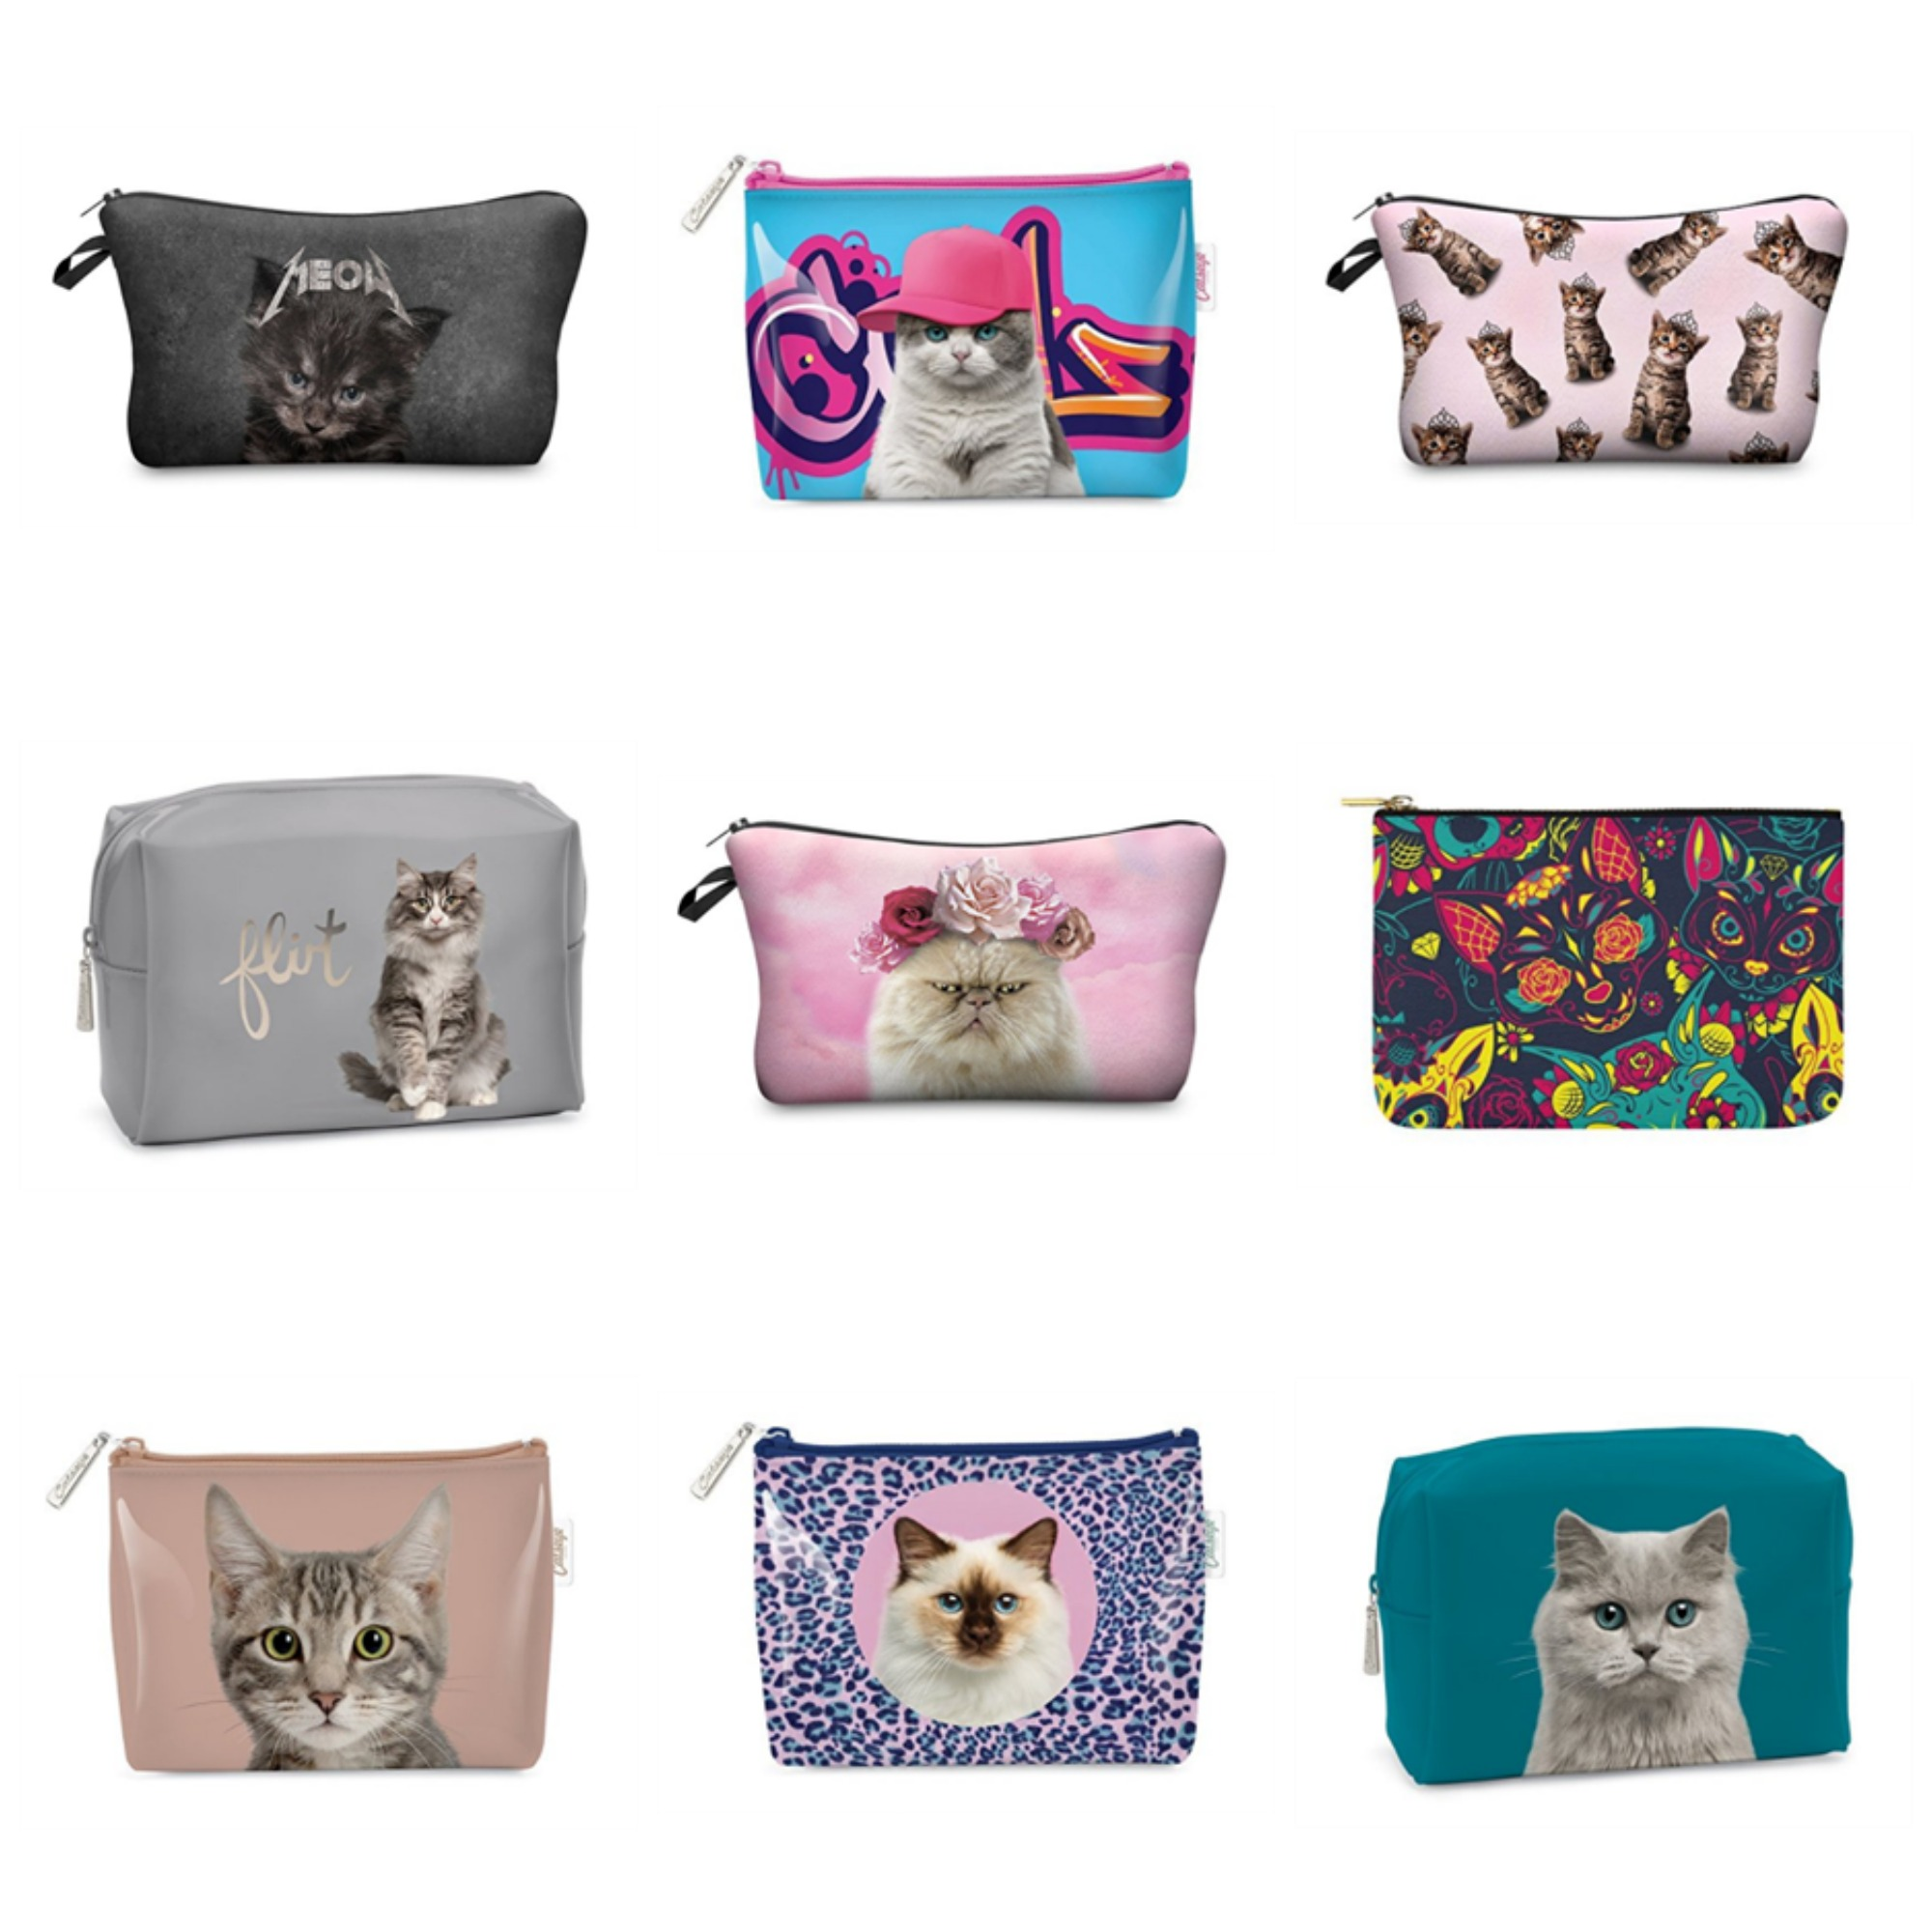 cat makeup bags feature